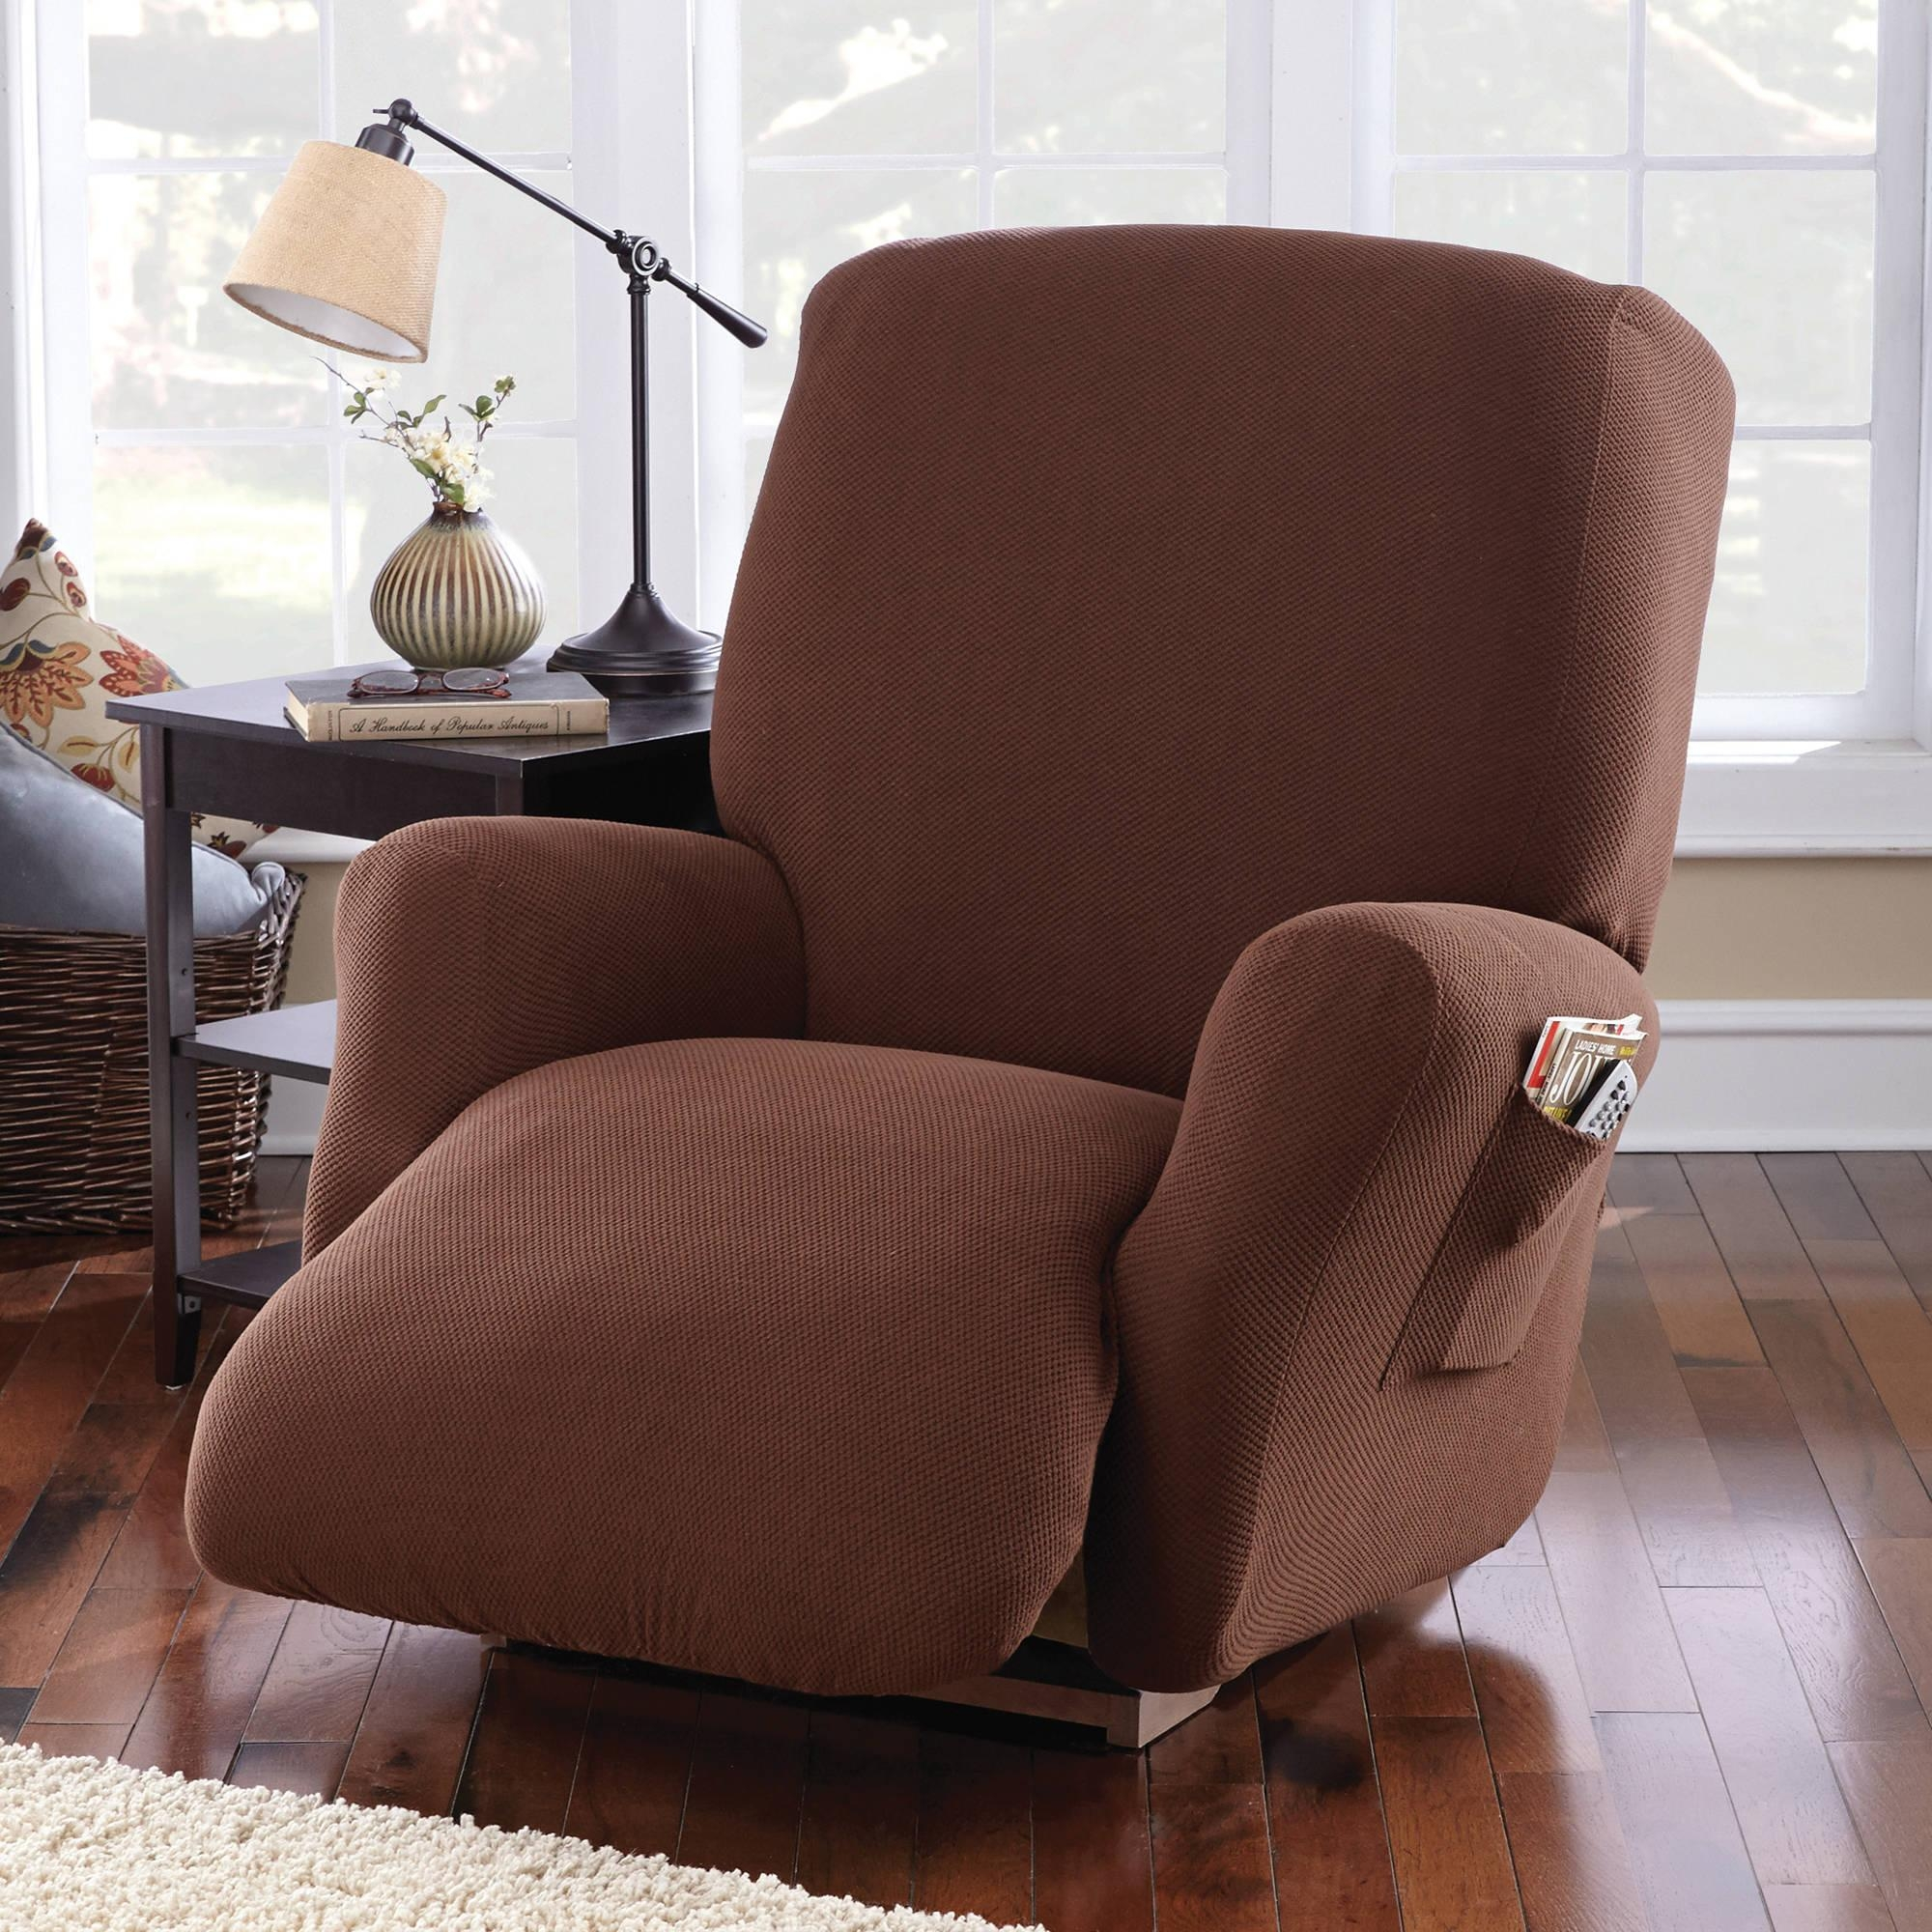 Mainstays Pixel Recliner Slipcover – Walmart For Walmart Slipcovers For Sofas (Image 12 of 20)